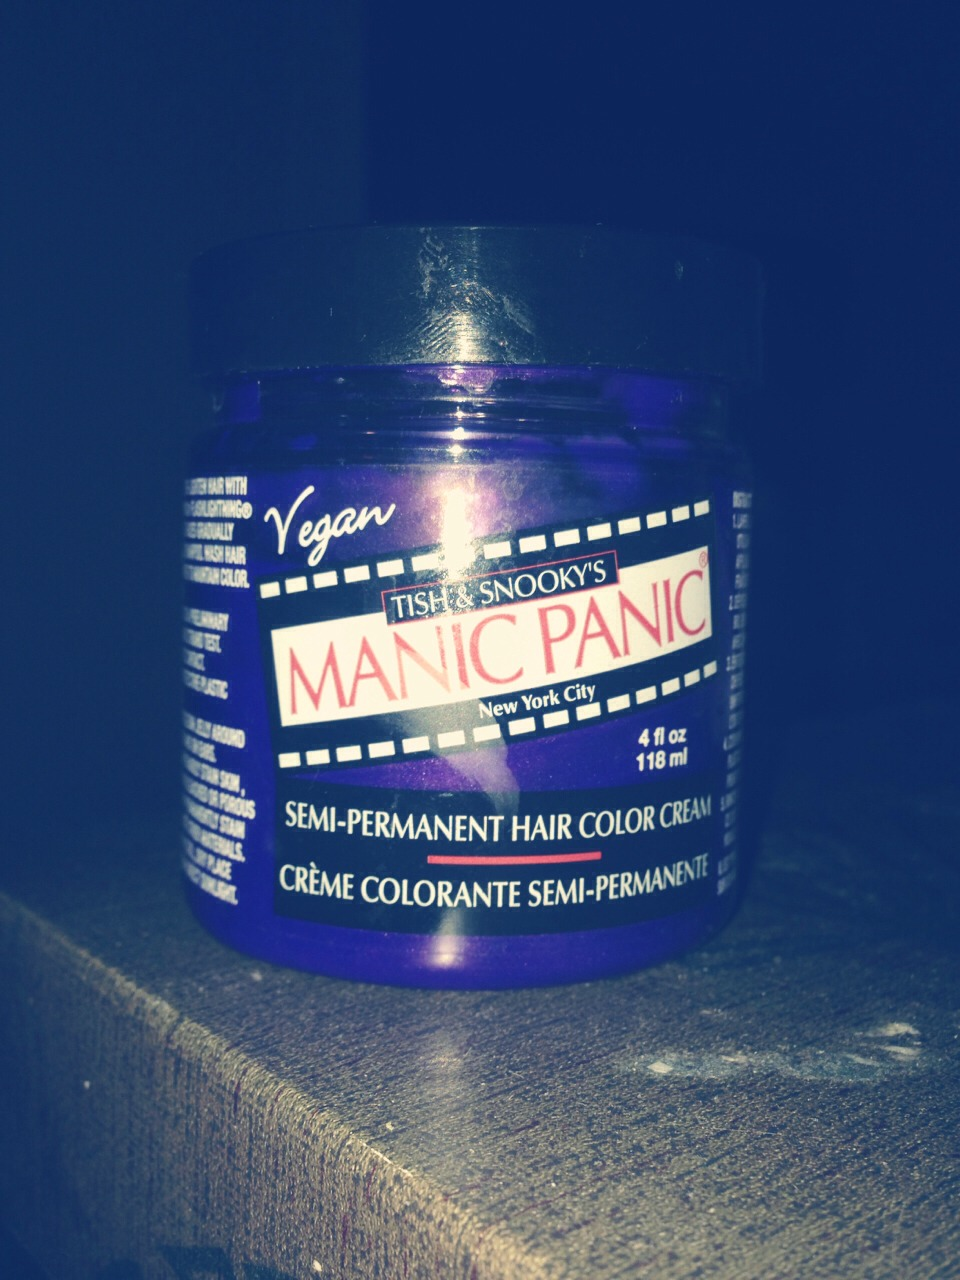 Take a bottle of manic panic ( ultra violet) dip 1 cm of your finger